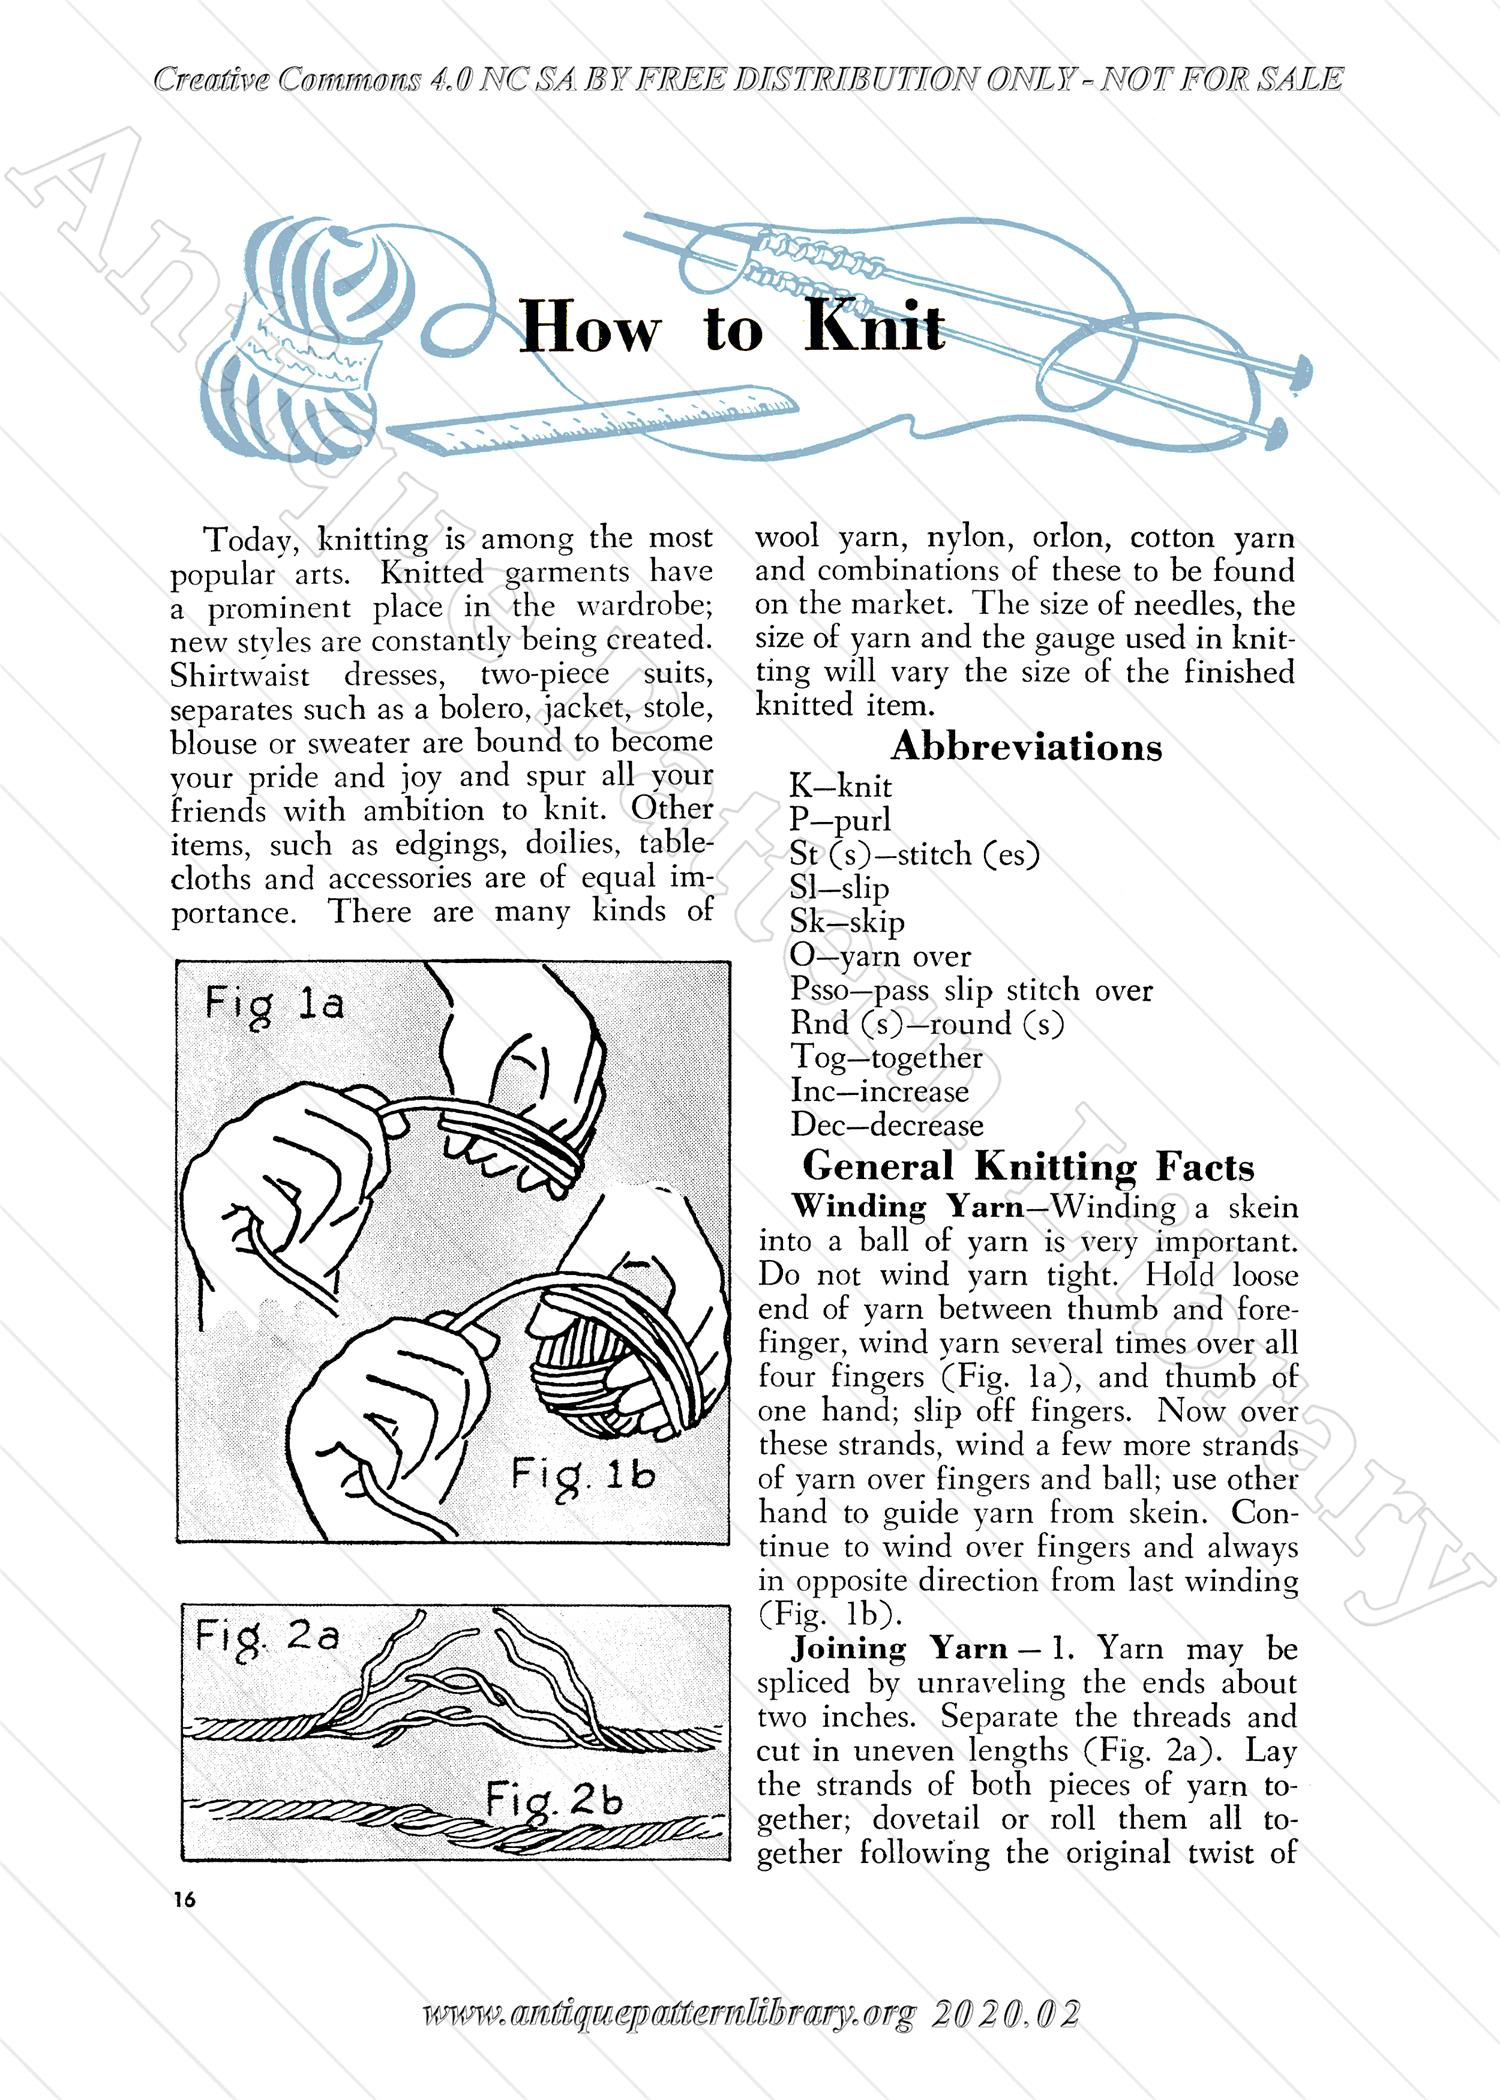 K-AK001 Aunt Ellen's How To Book on Needlework